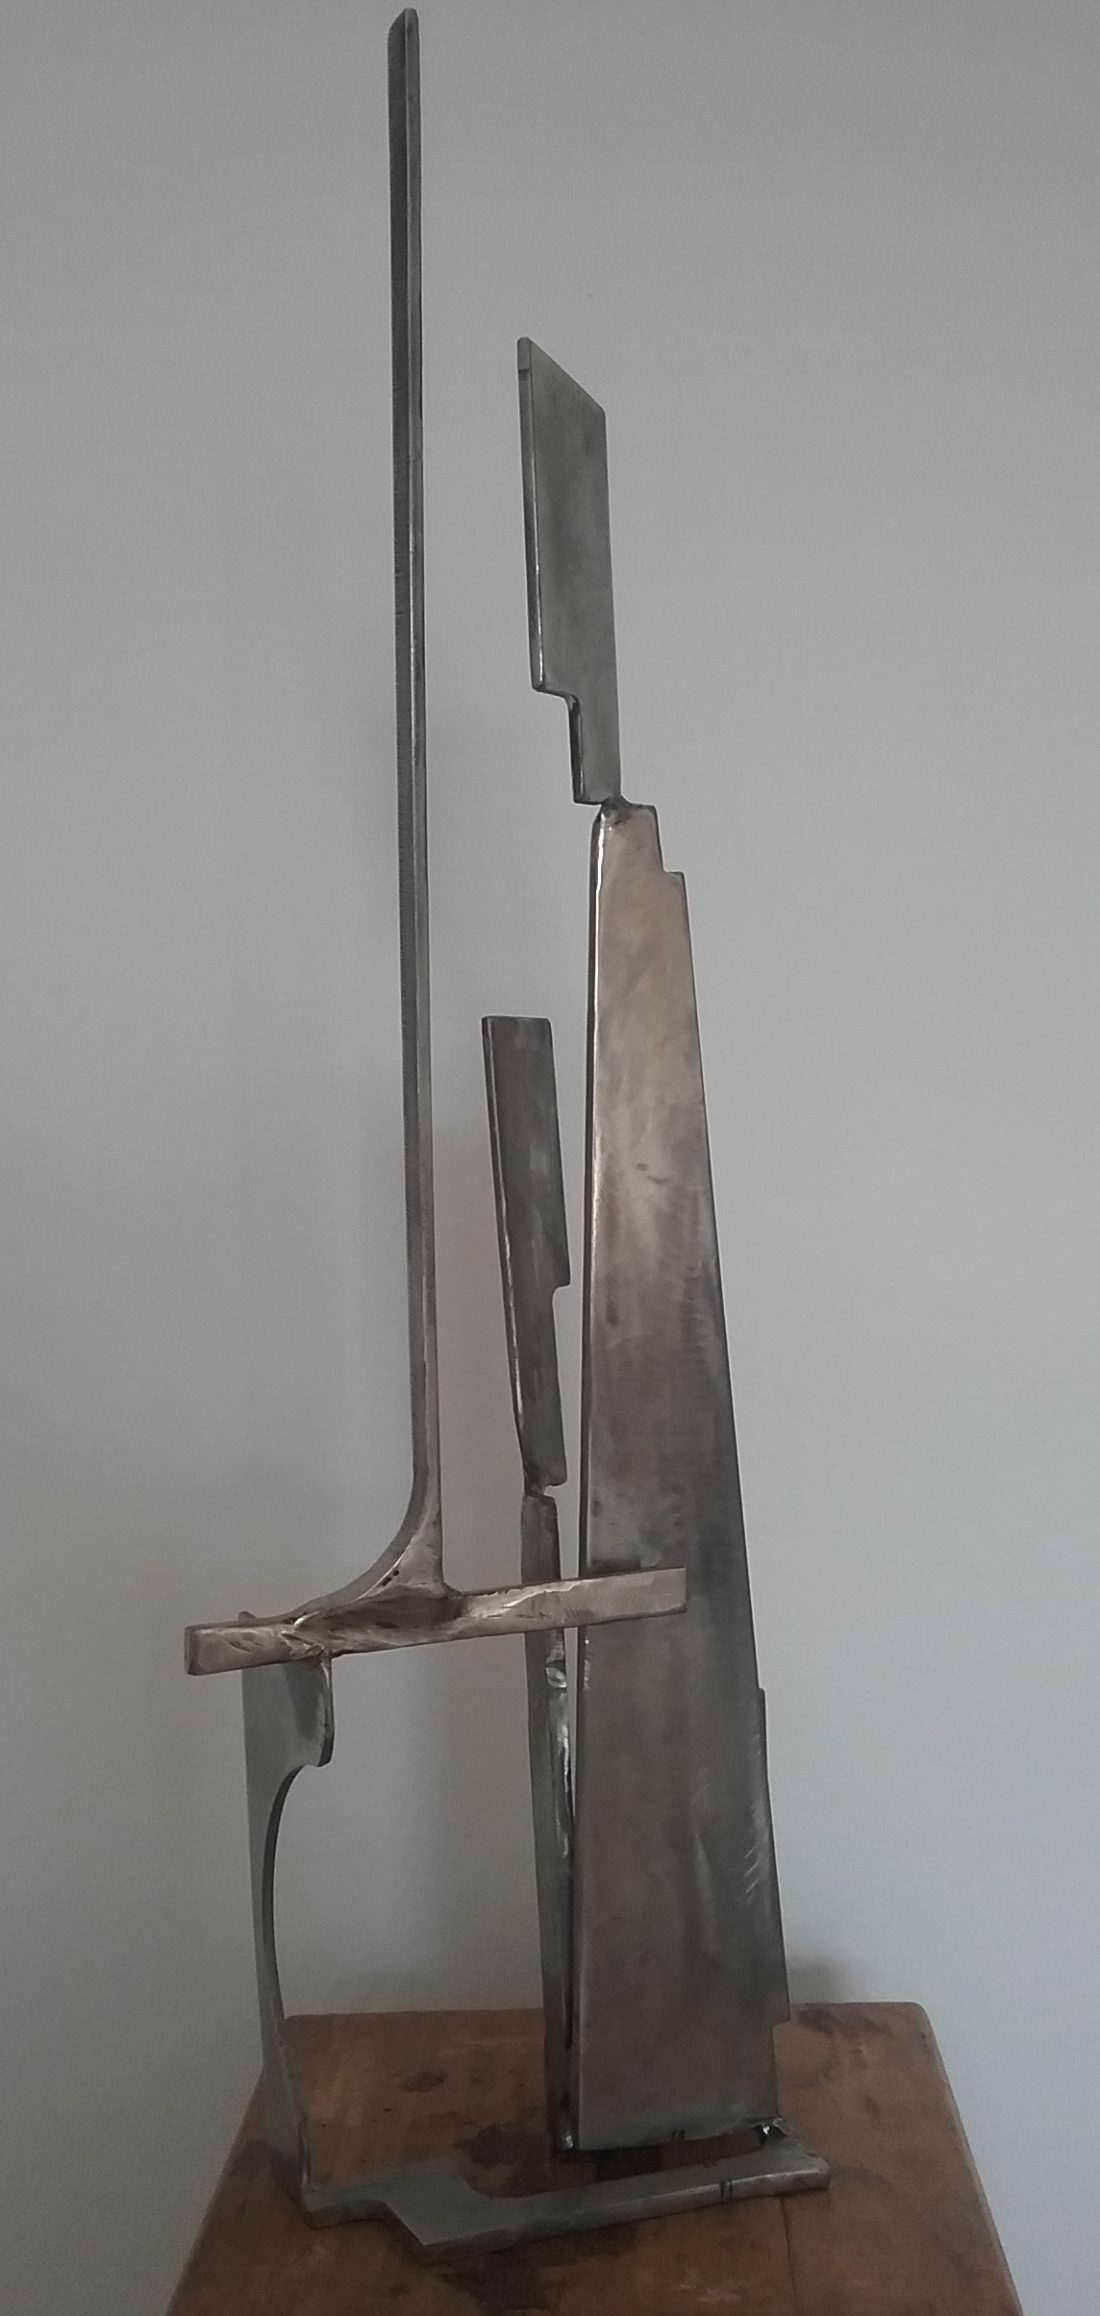 Paul Bacon sculpture stainless steel landscape abstract impressionism